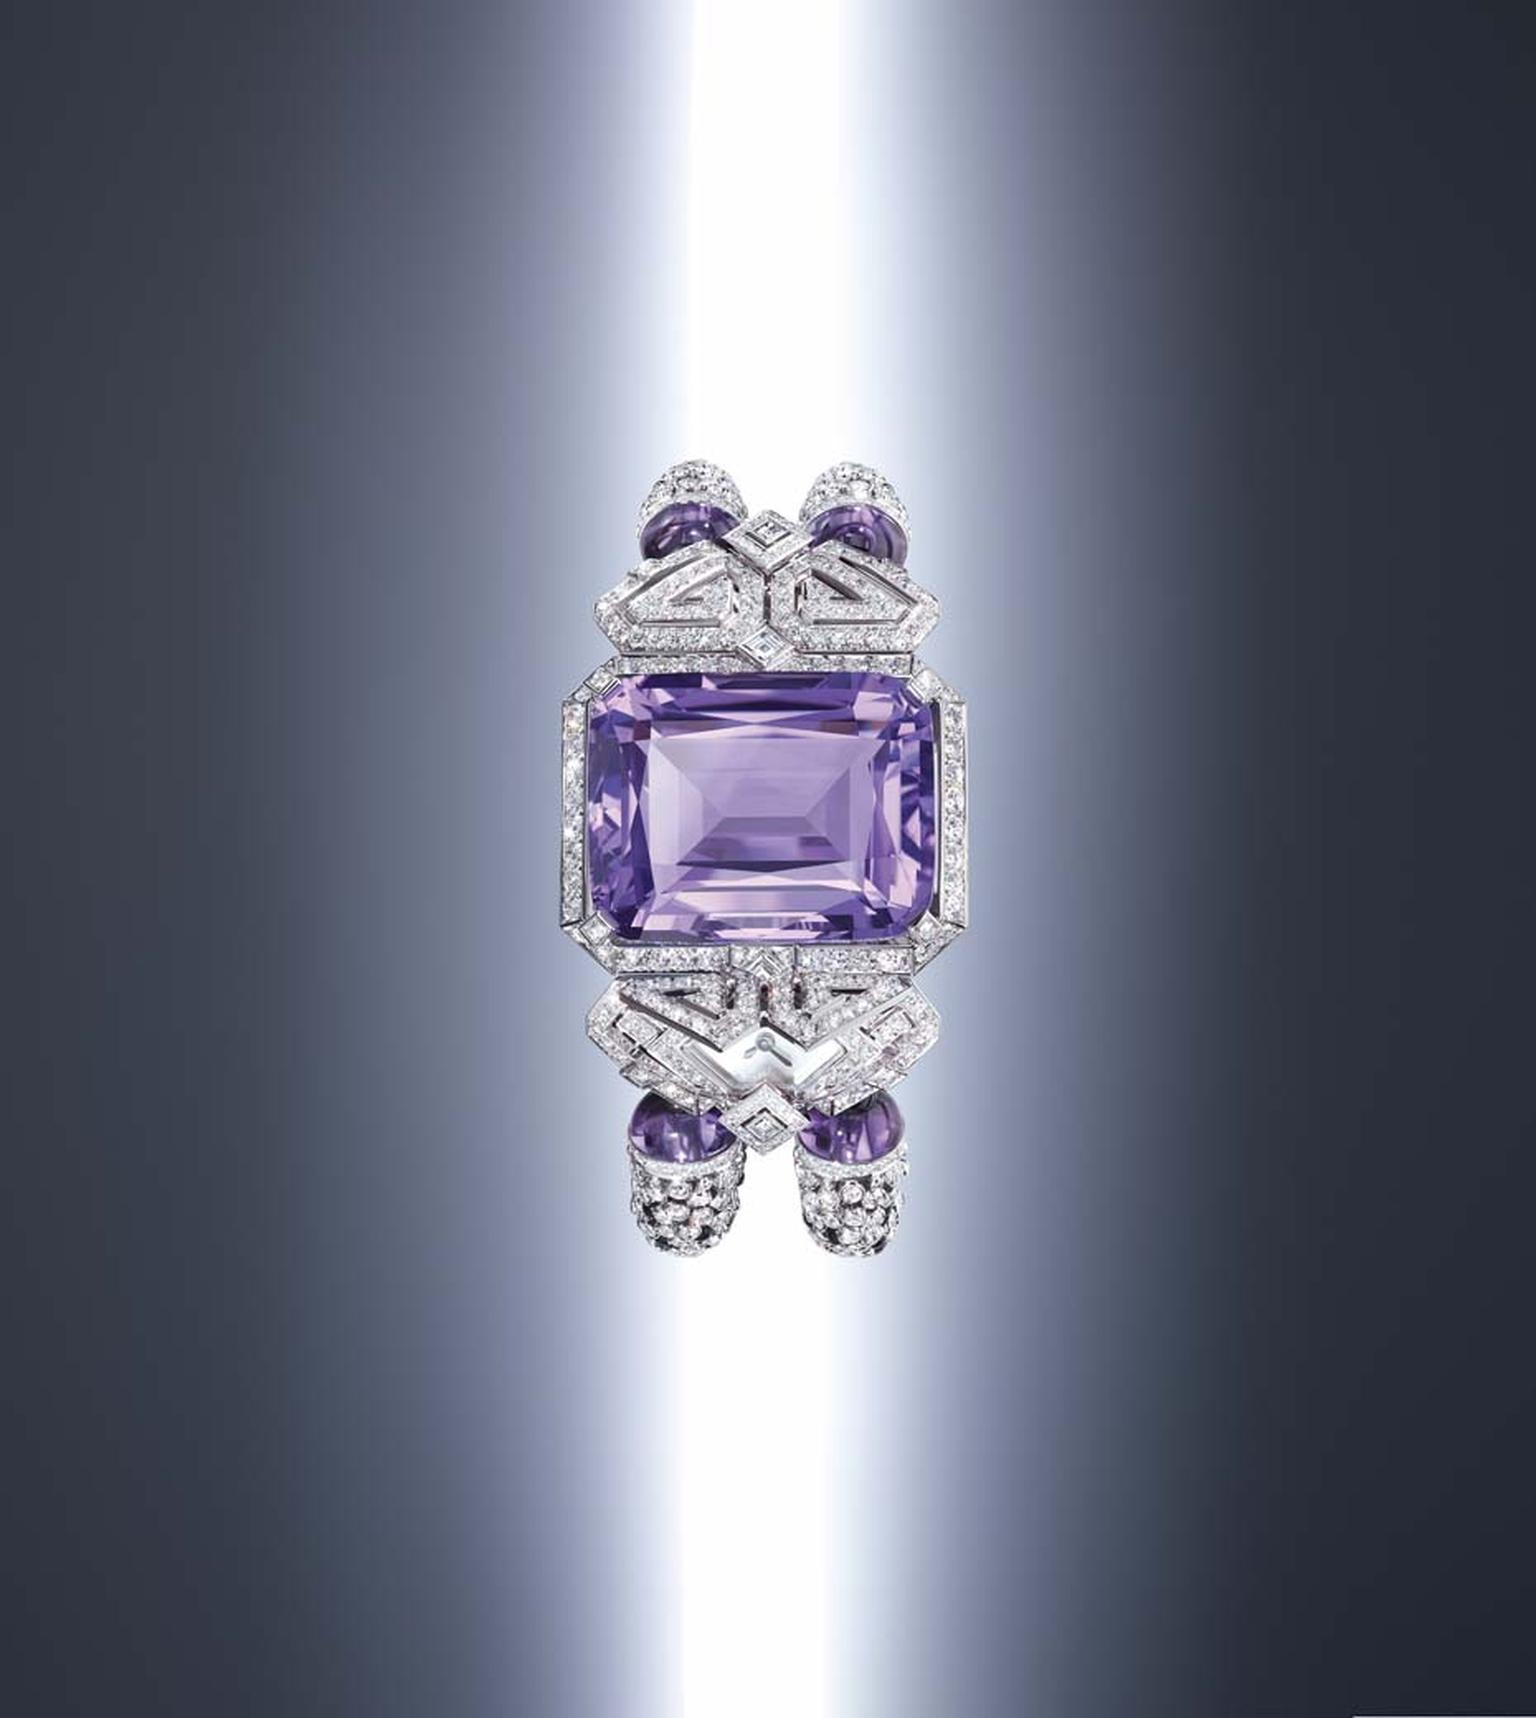 Cartier Purple high jewellery secret watch marries a marvellous, cushion-shaped amethyst of 62.84 carats with a geometric, Art Deco frame punctuated with diamonds.